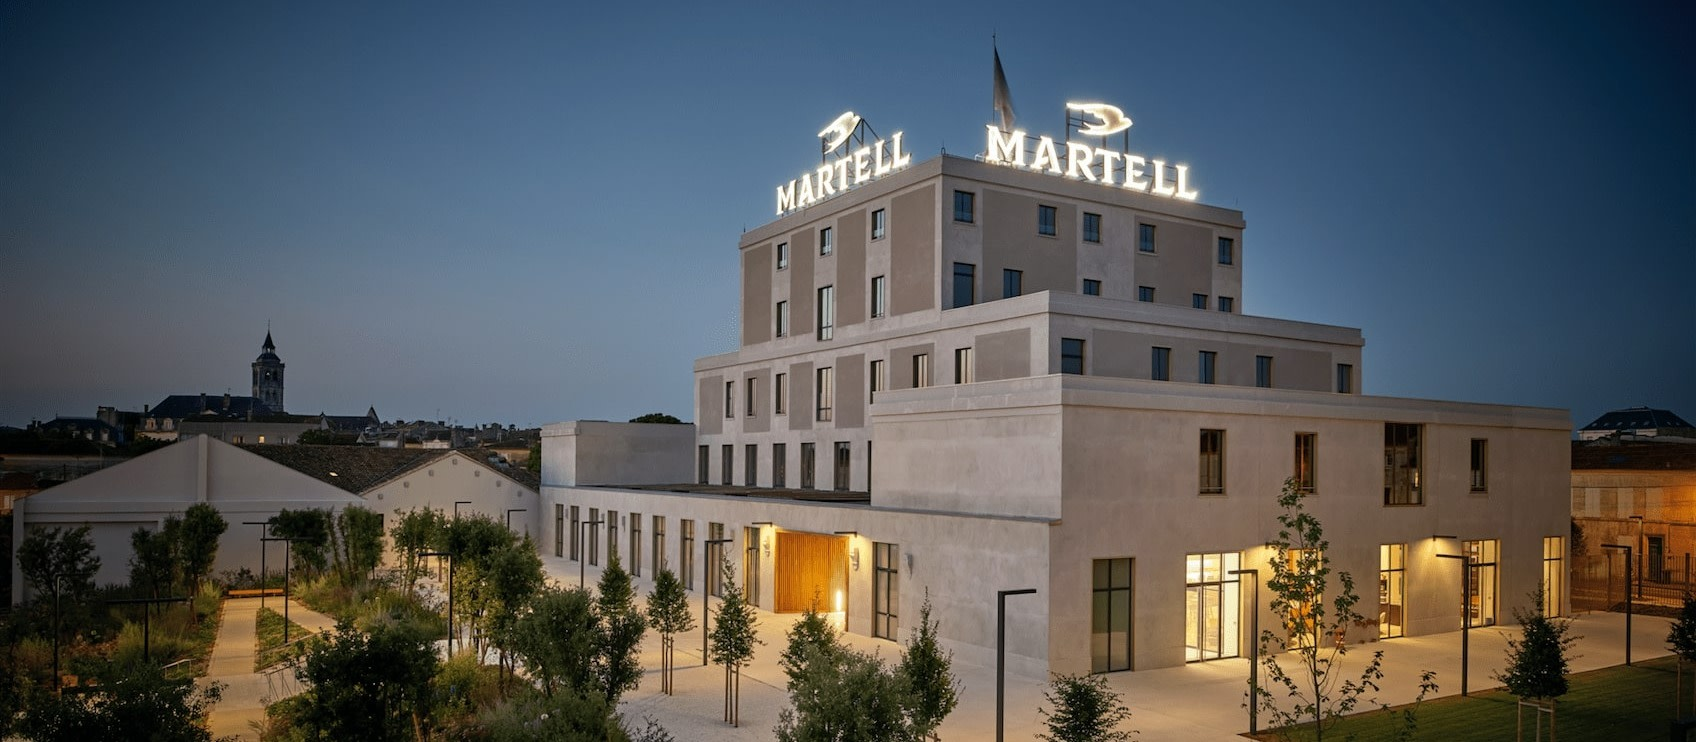 Maison Martell, une institution de Cognac